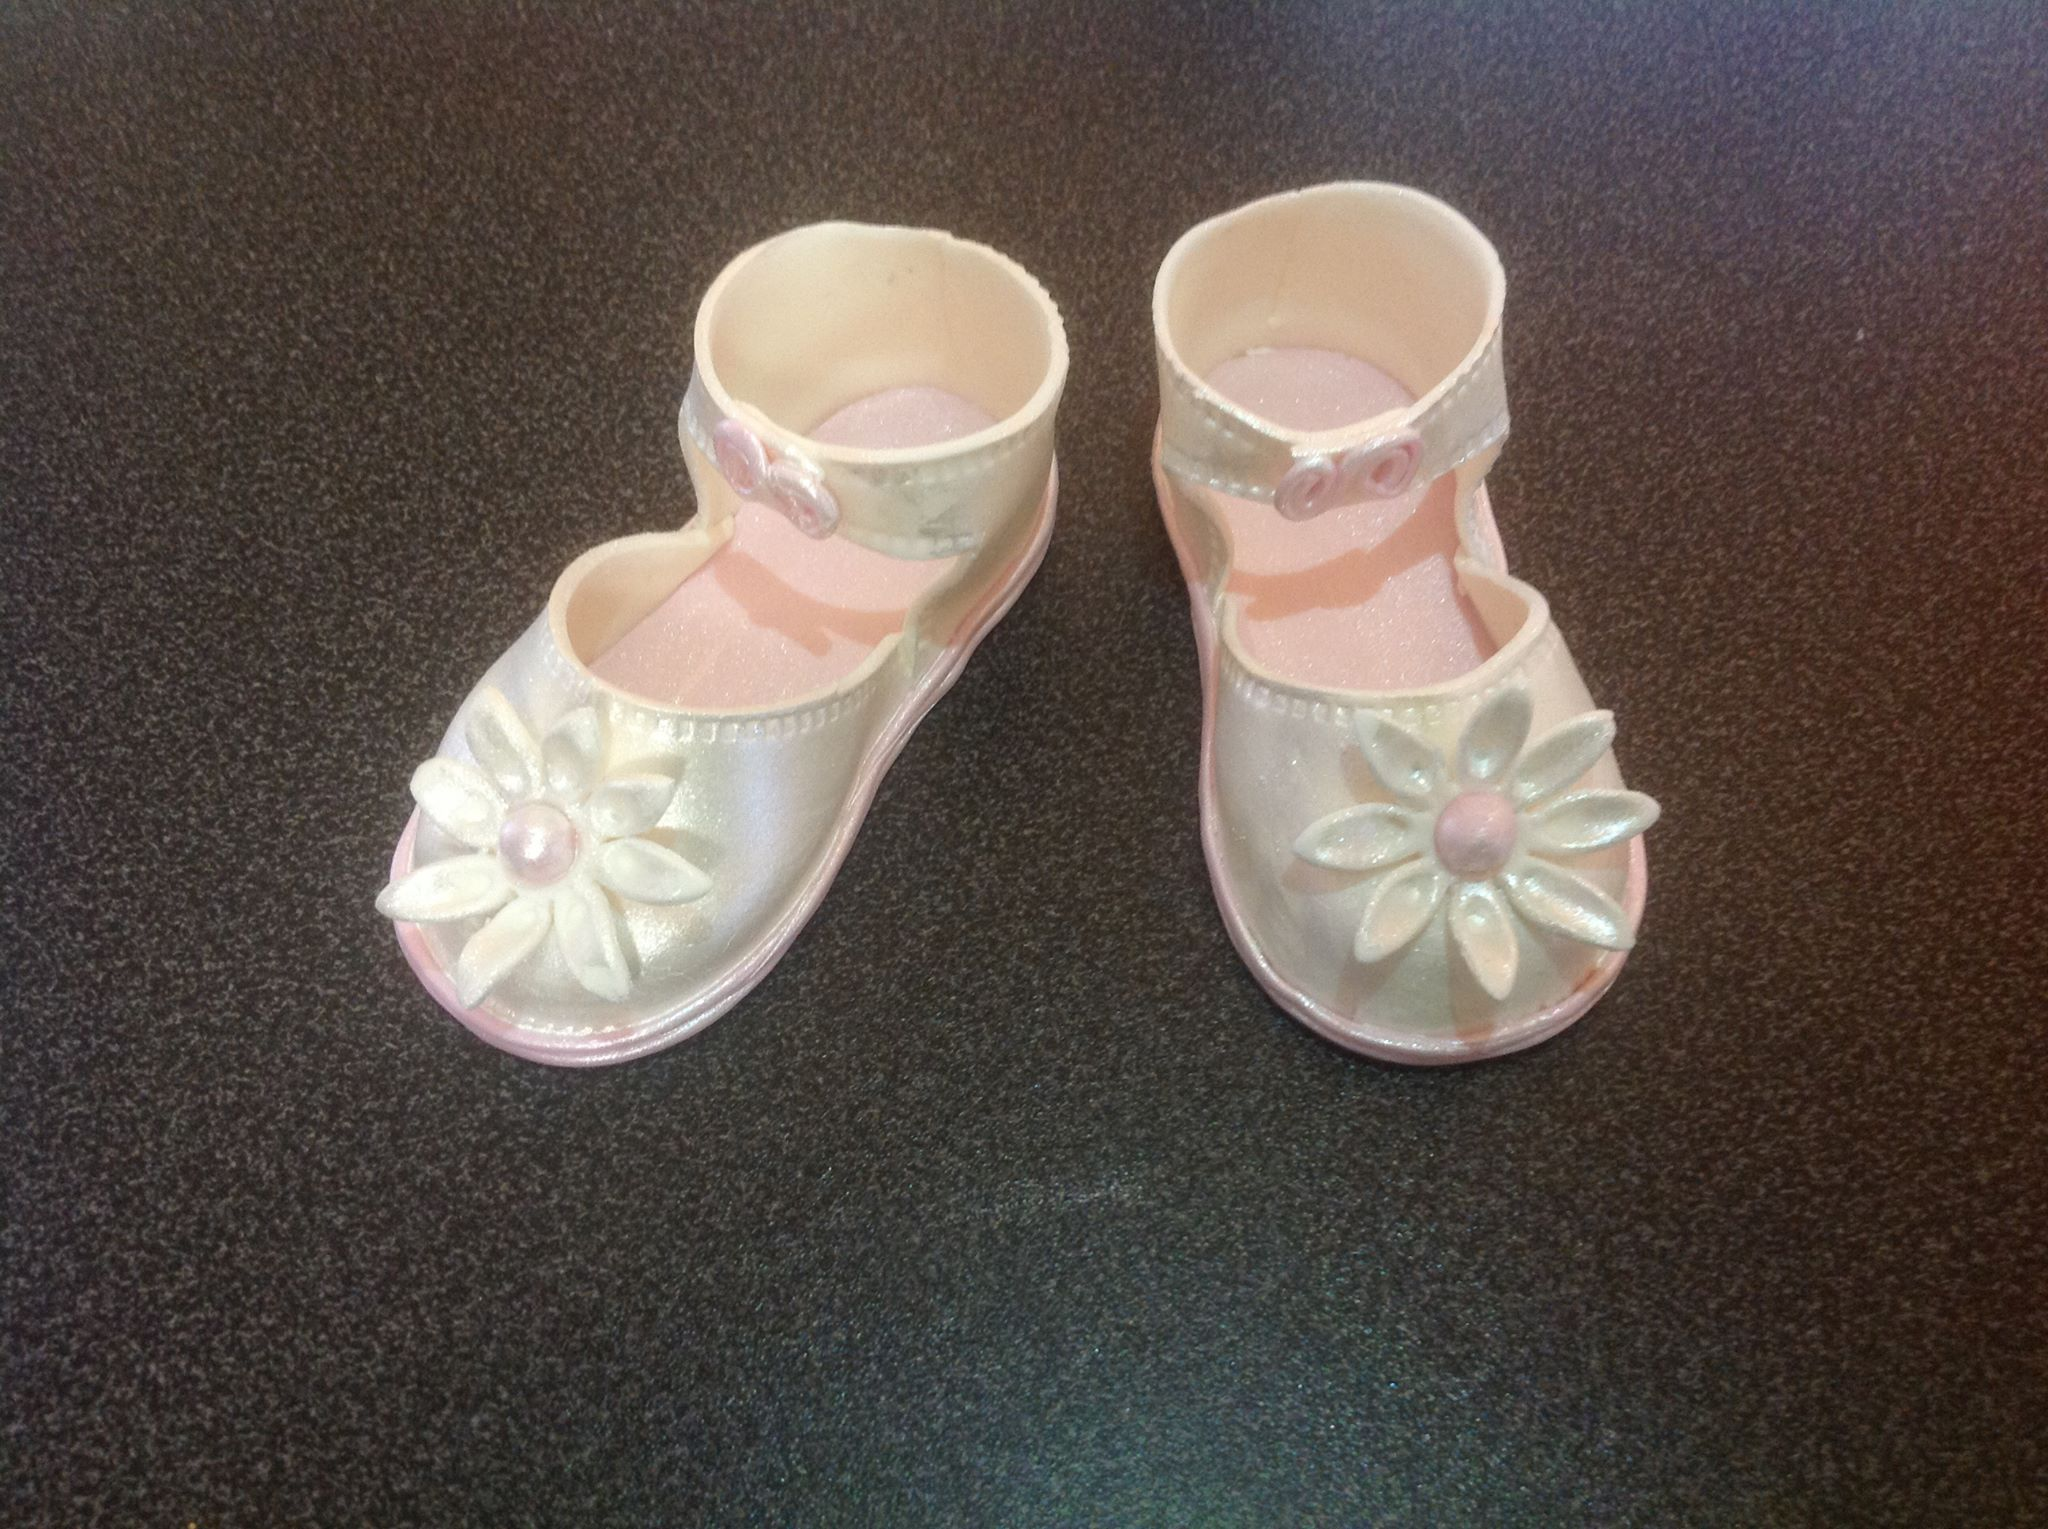 Cake Decorations Baby Shoes : Baby Shoes cake decorations Anna s Cakery